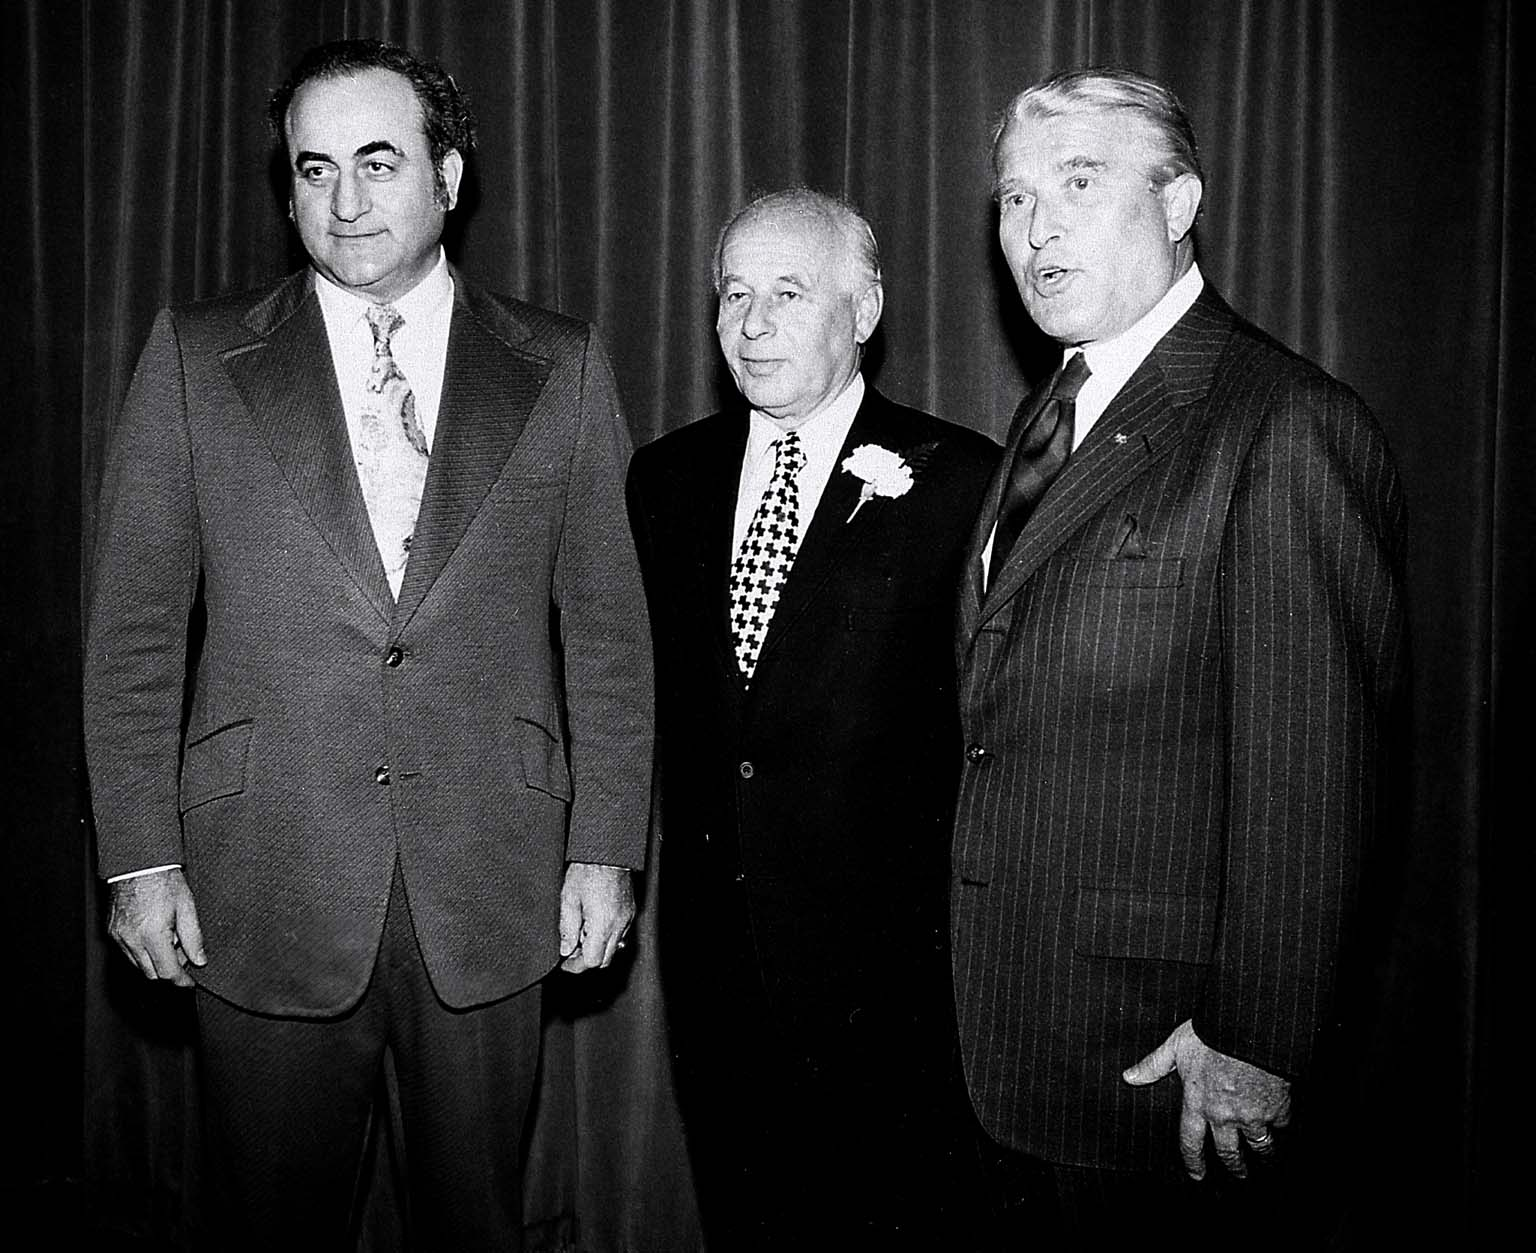 Three MSFC Directors; Dr. Petrone, Dr. Rees, and Dr. von Braun